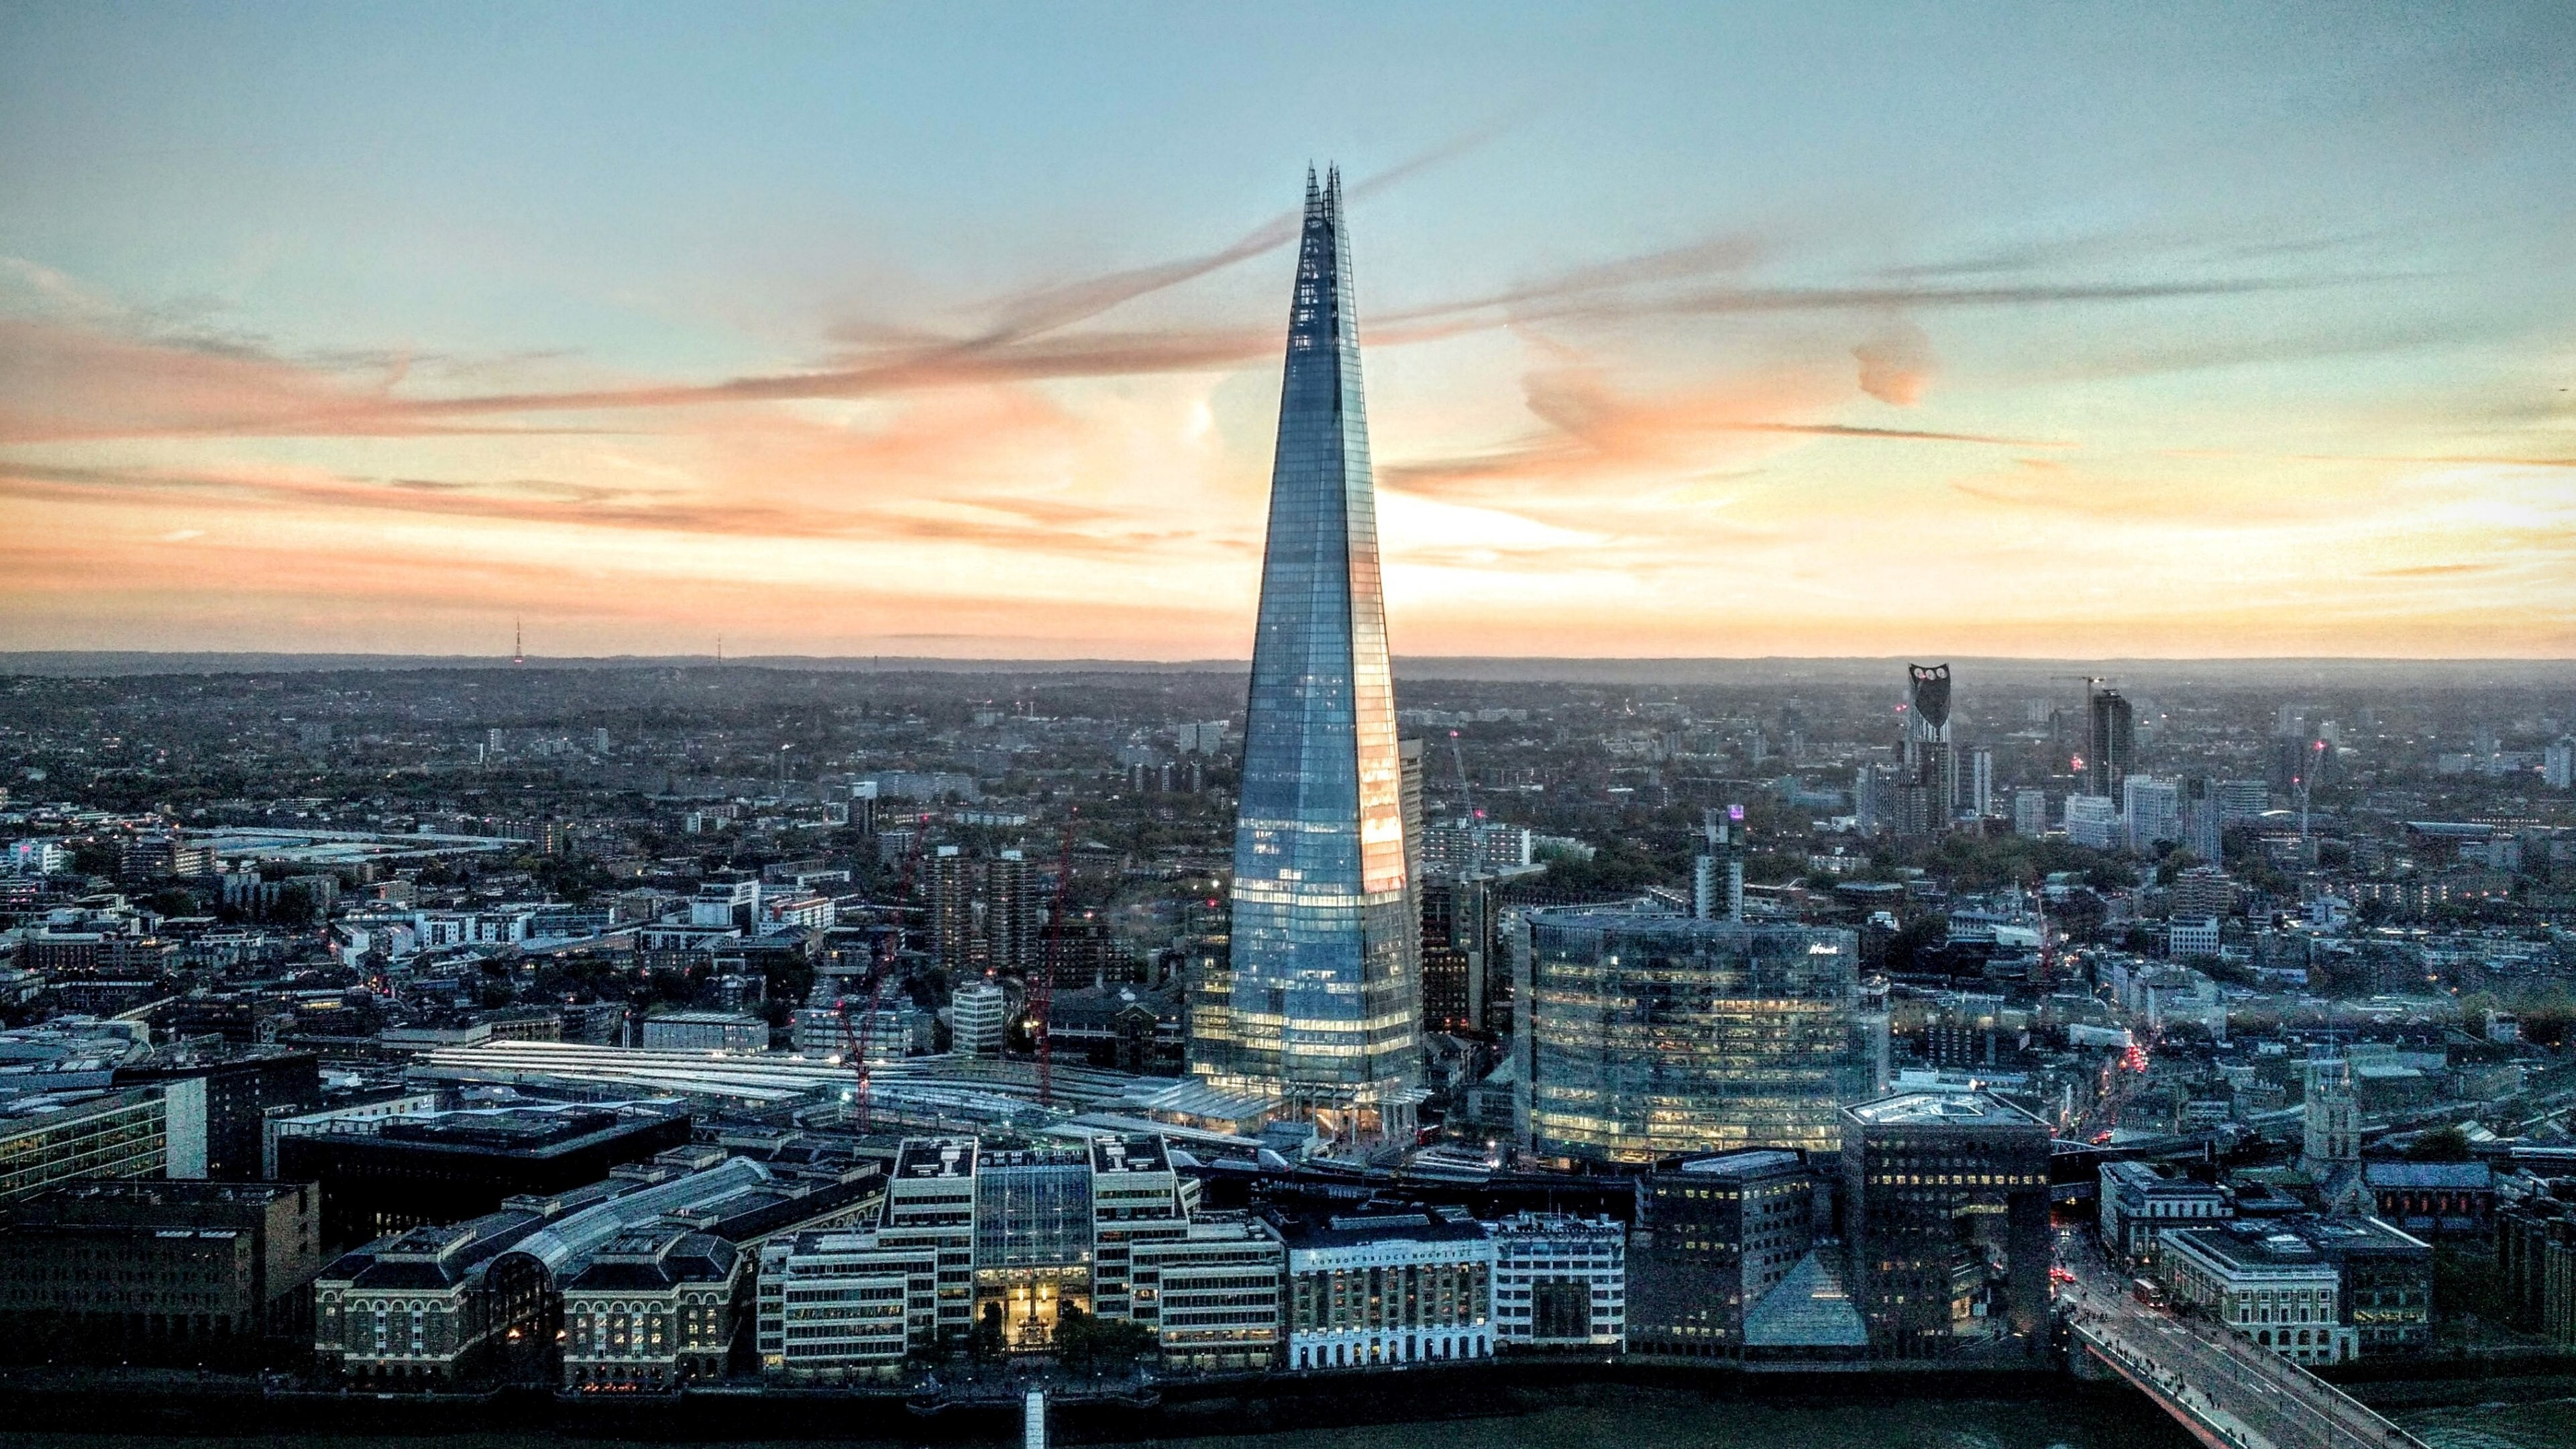 The Shard Skyscraper In London England 4k Wallpapers Hd